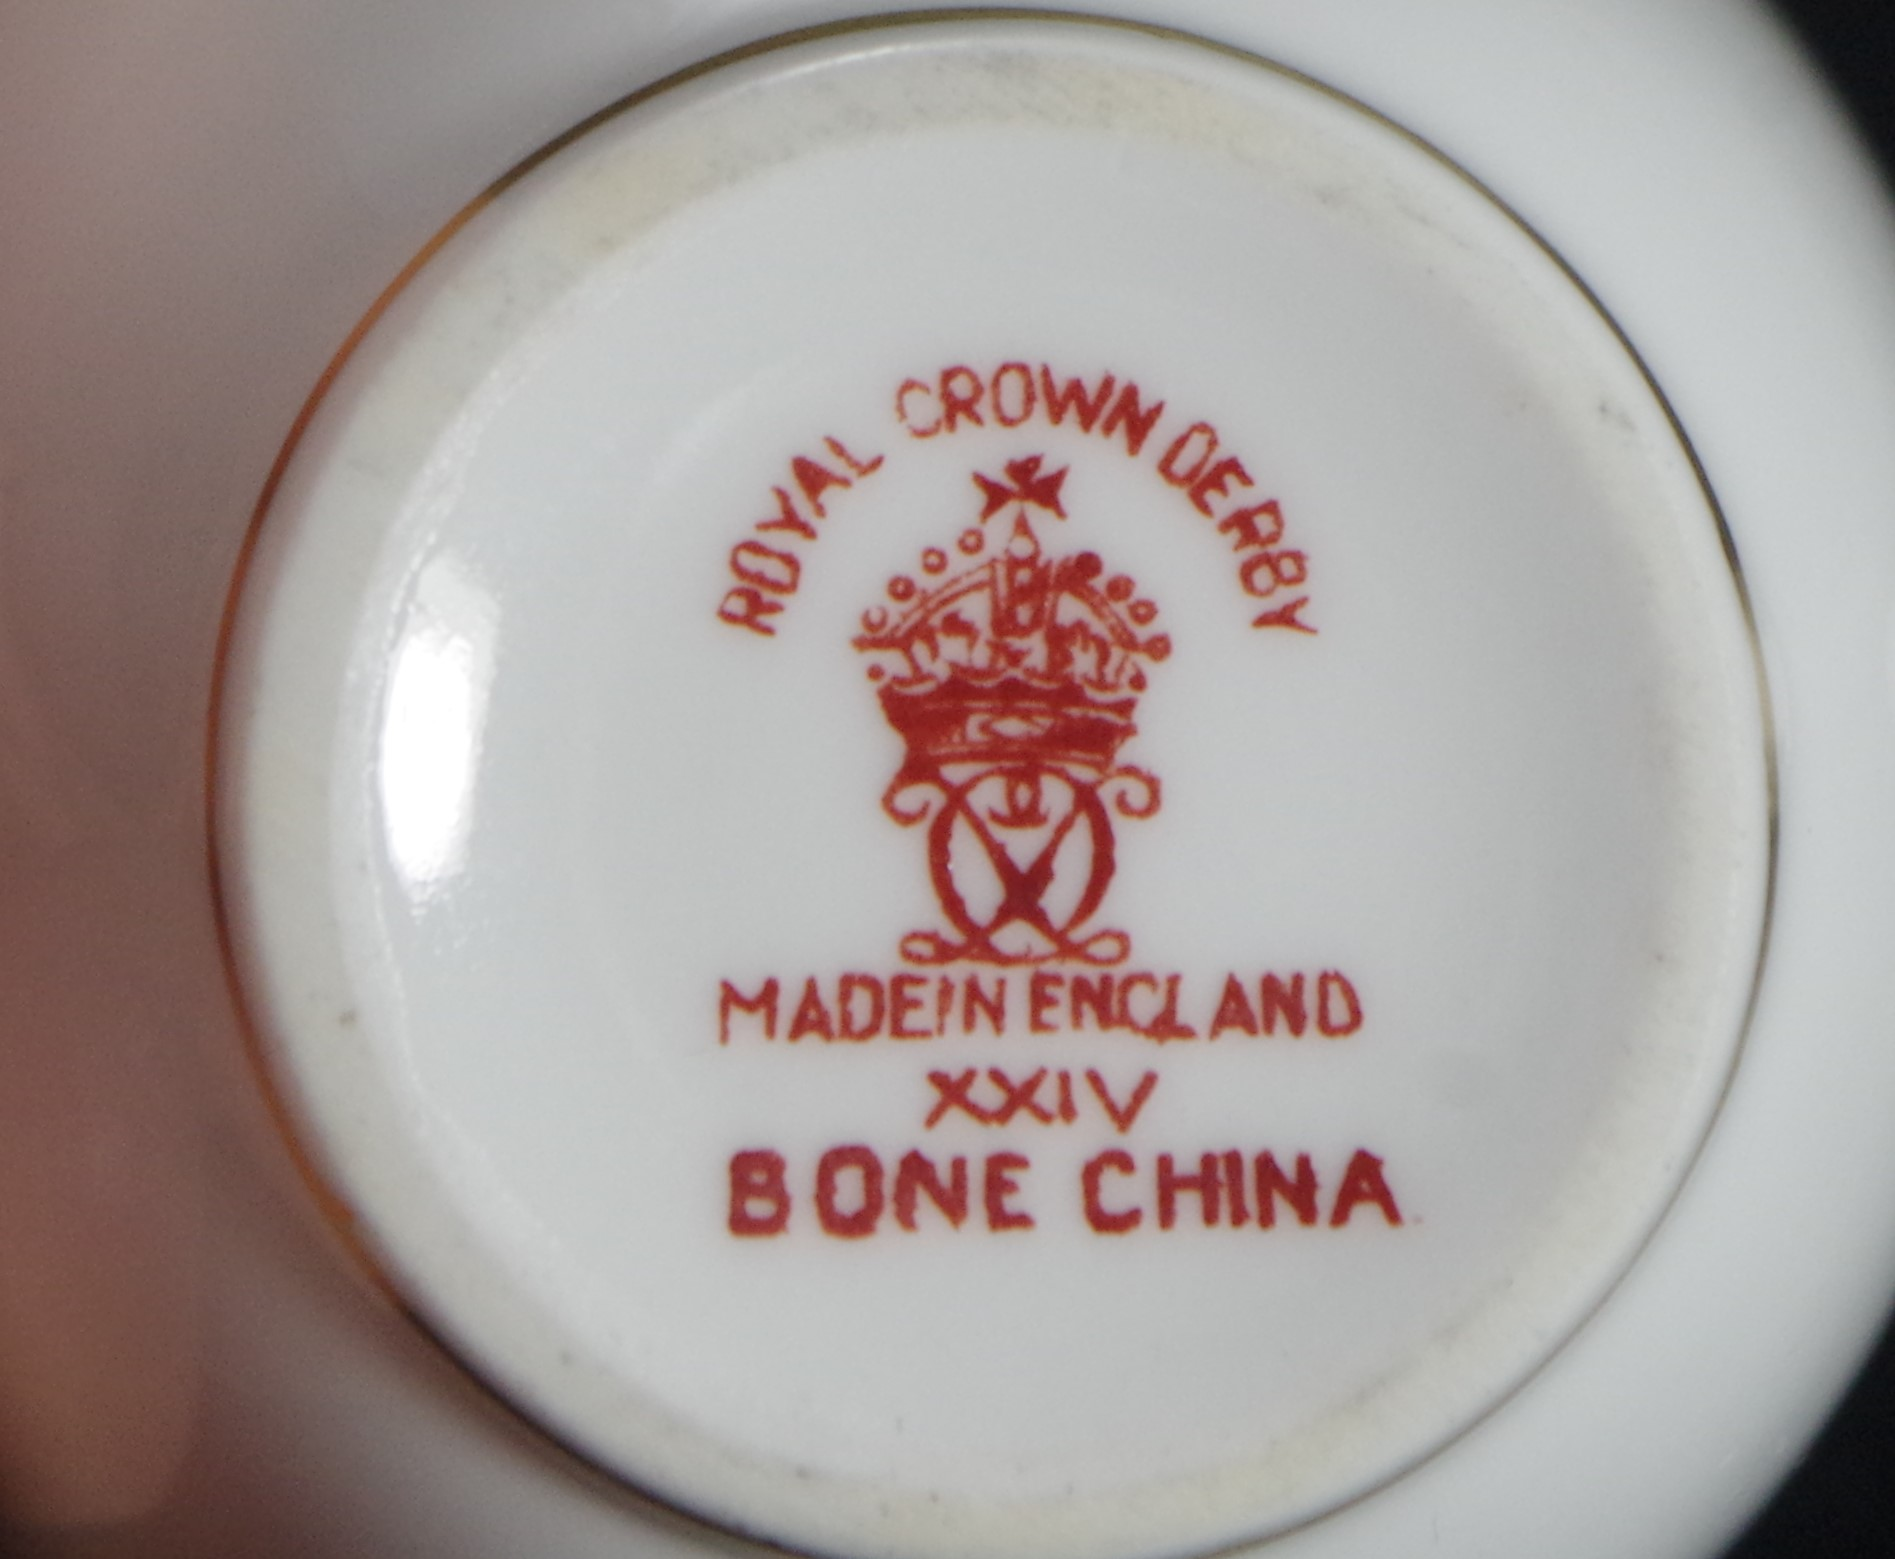 royal-crown-derby-silver-shape-the-national-insurance-company-of-new-zealand-ltd-mark